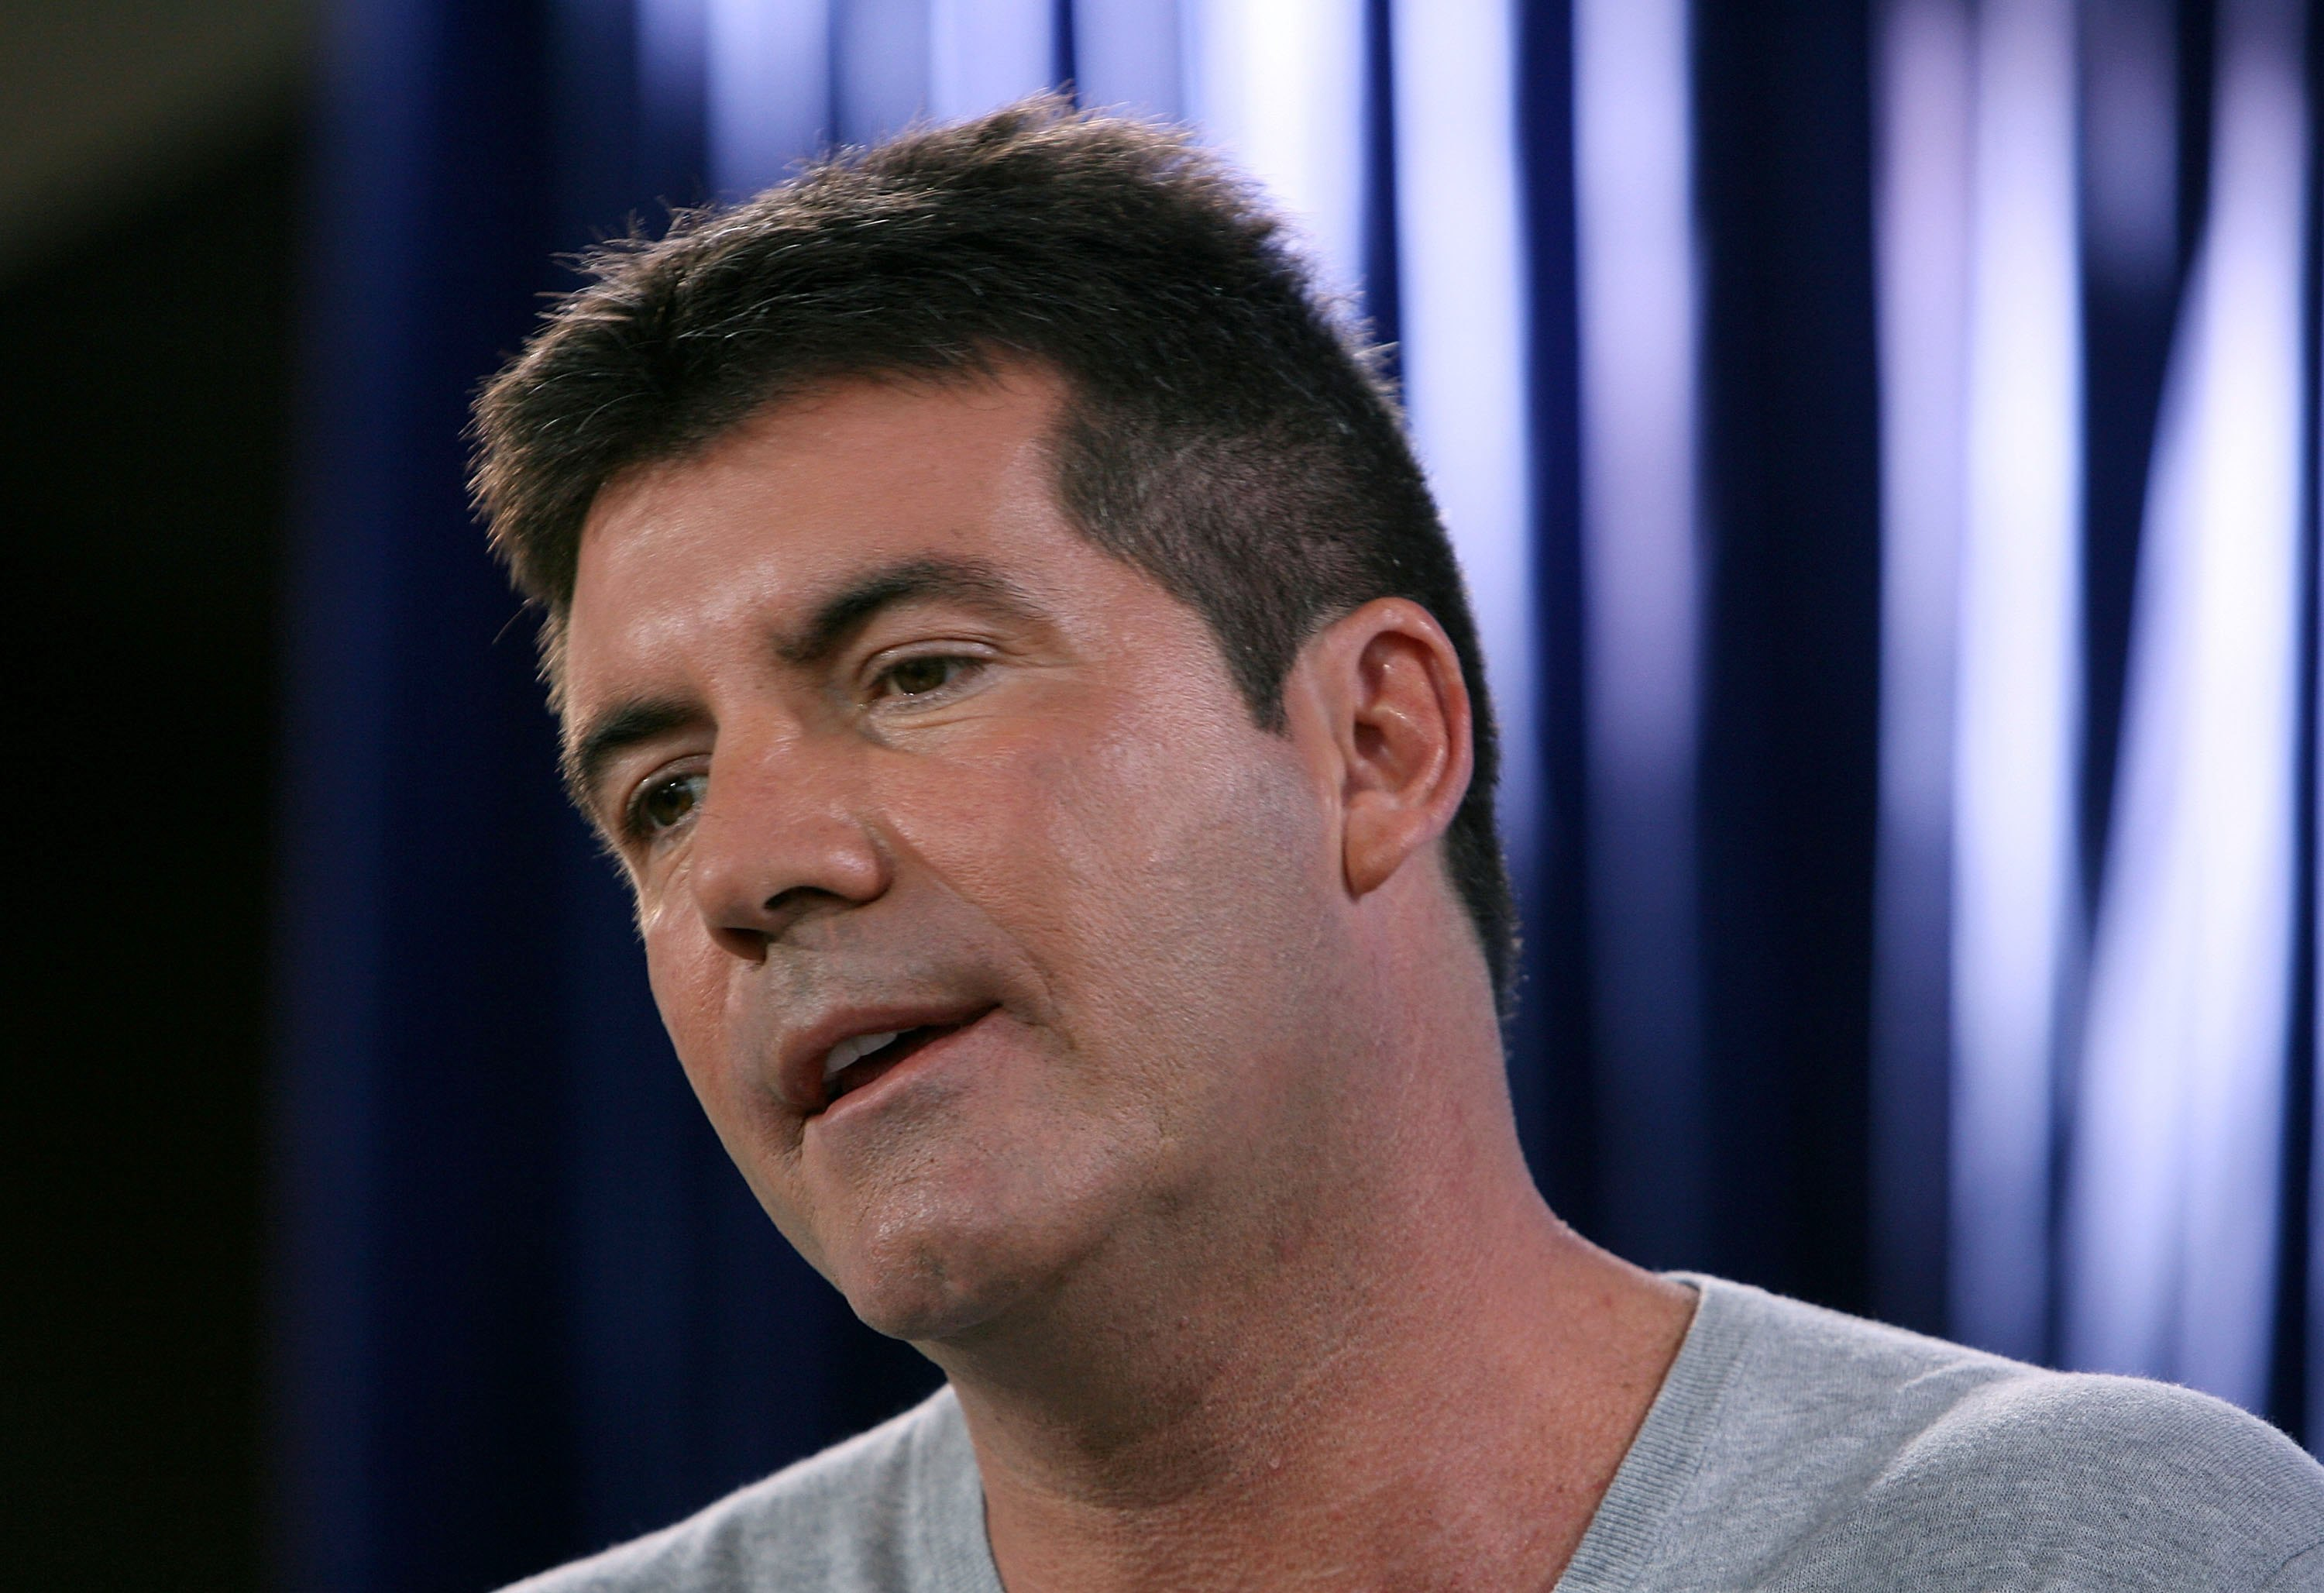 Simon Cowell as a judge.